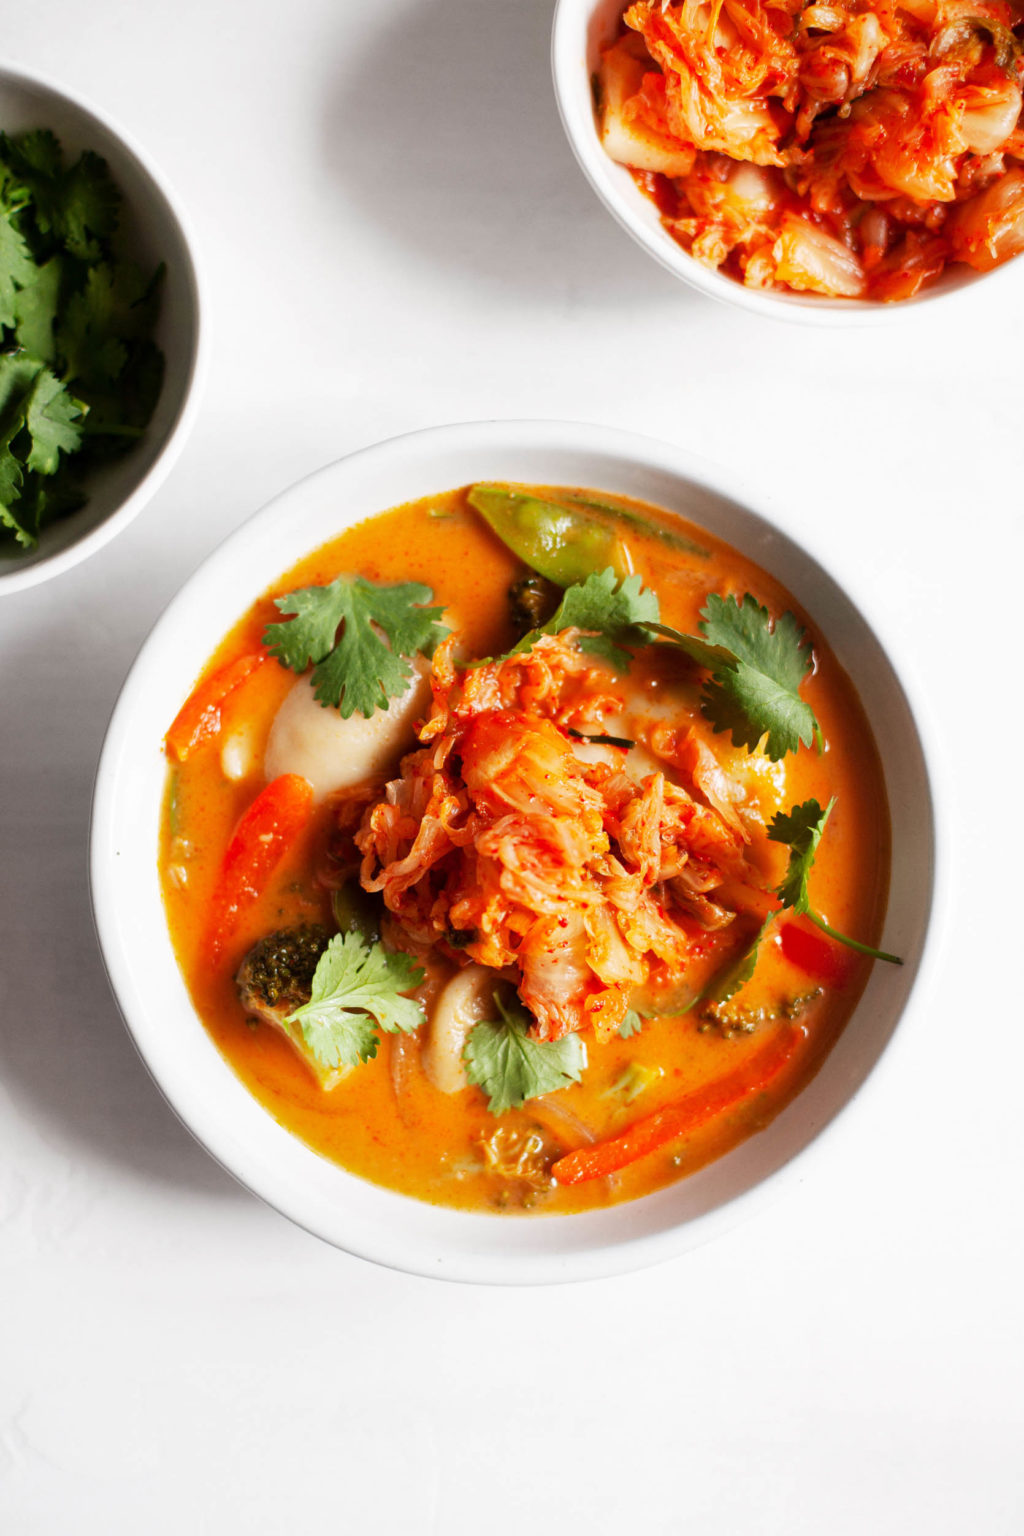 A bowl of red curry soup, garnished with a generous scoop of kimchi.